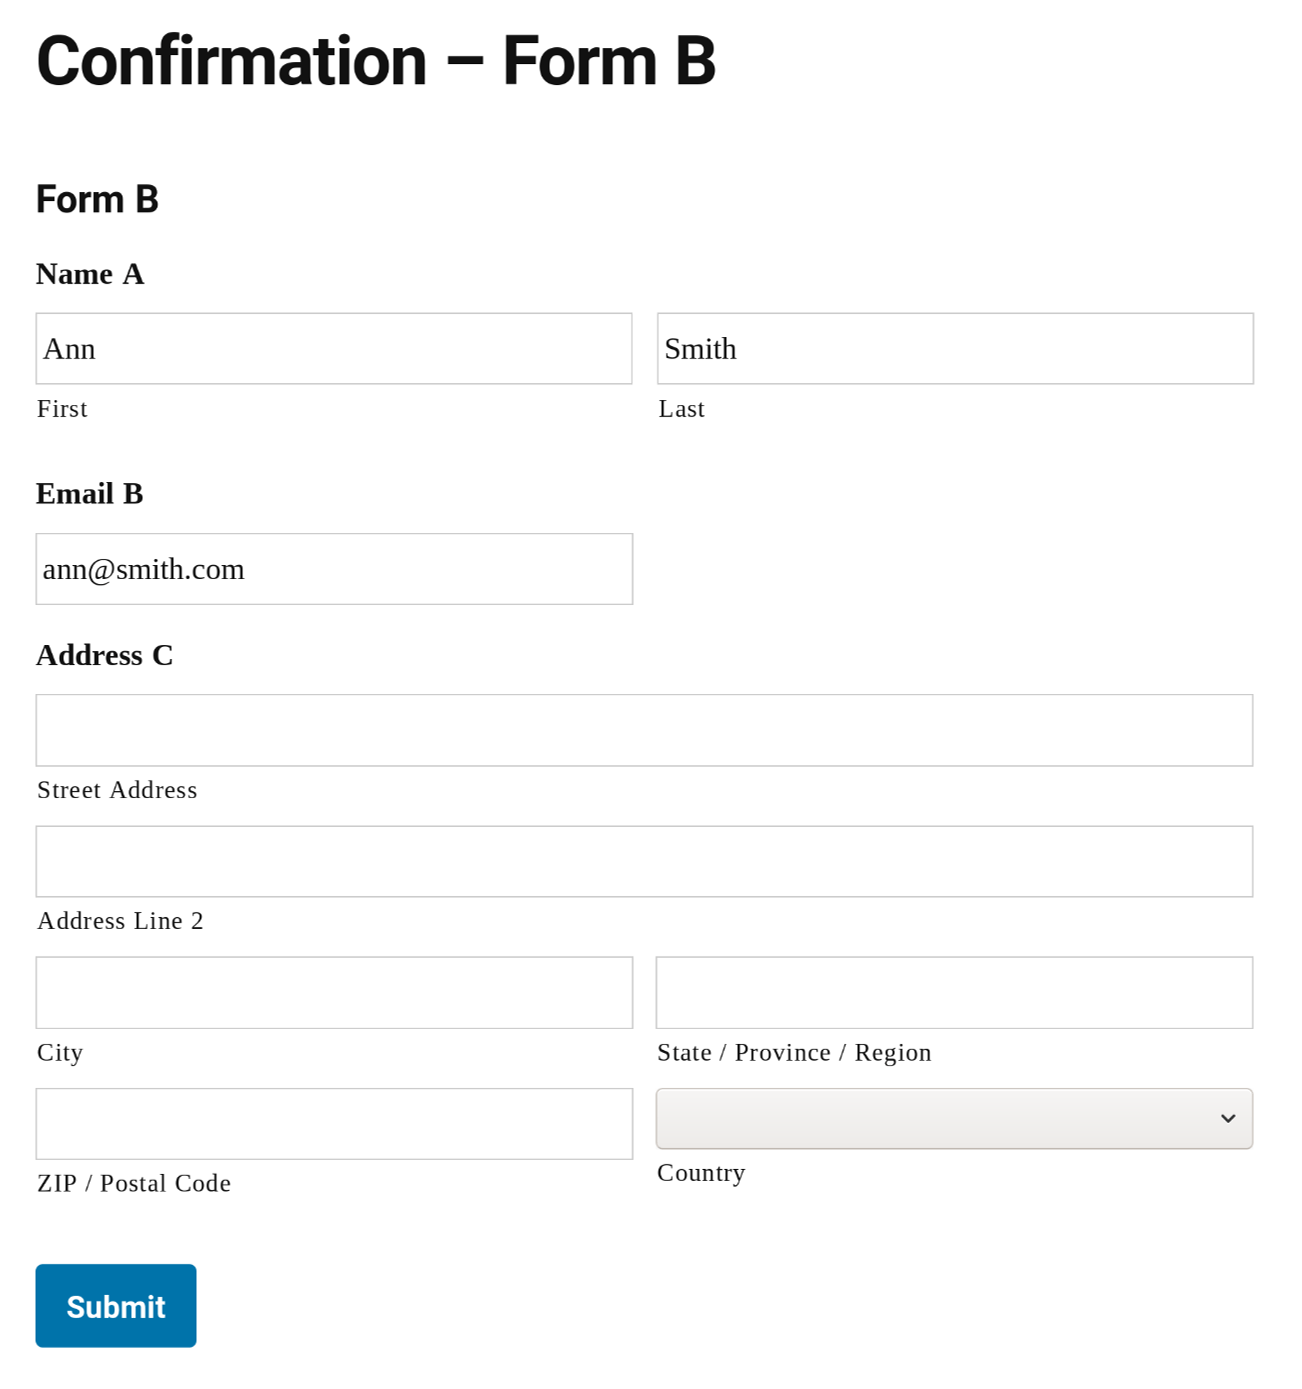 Submit Form B